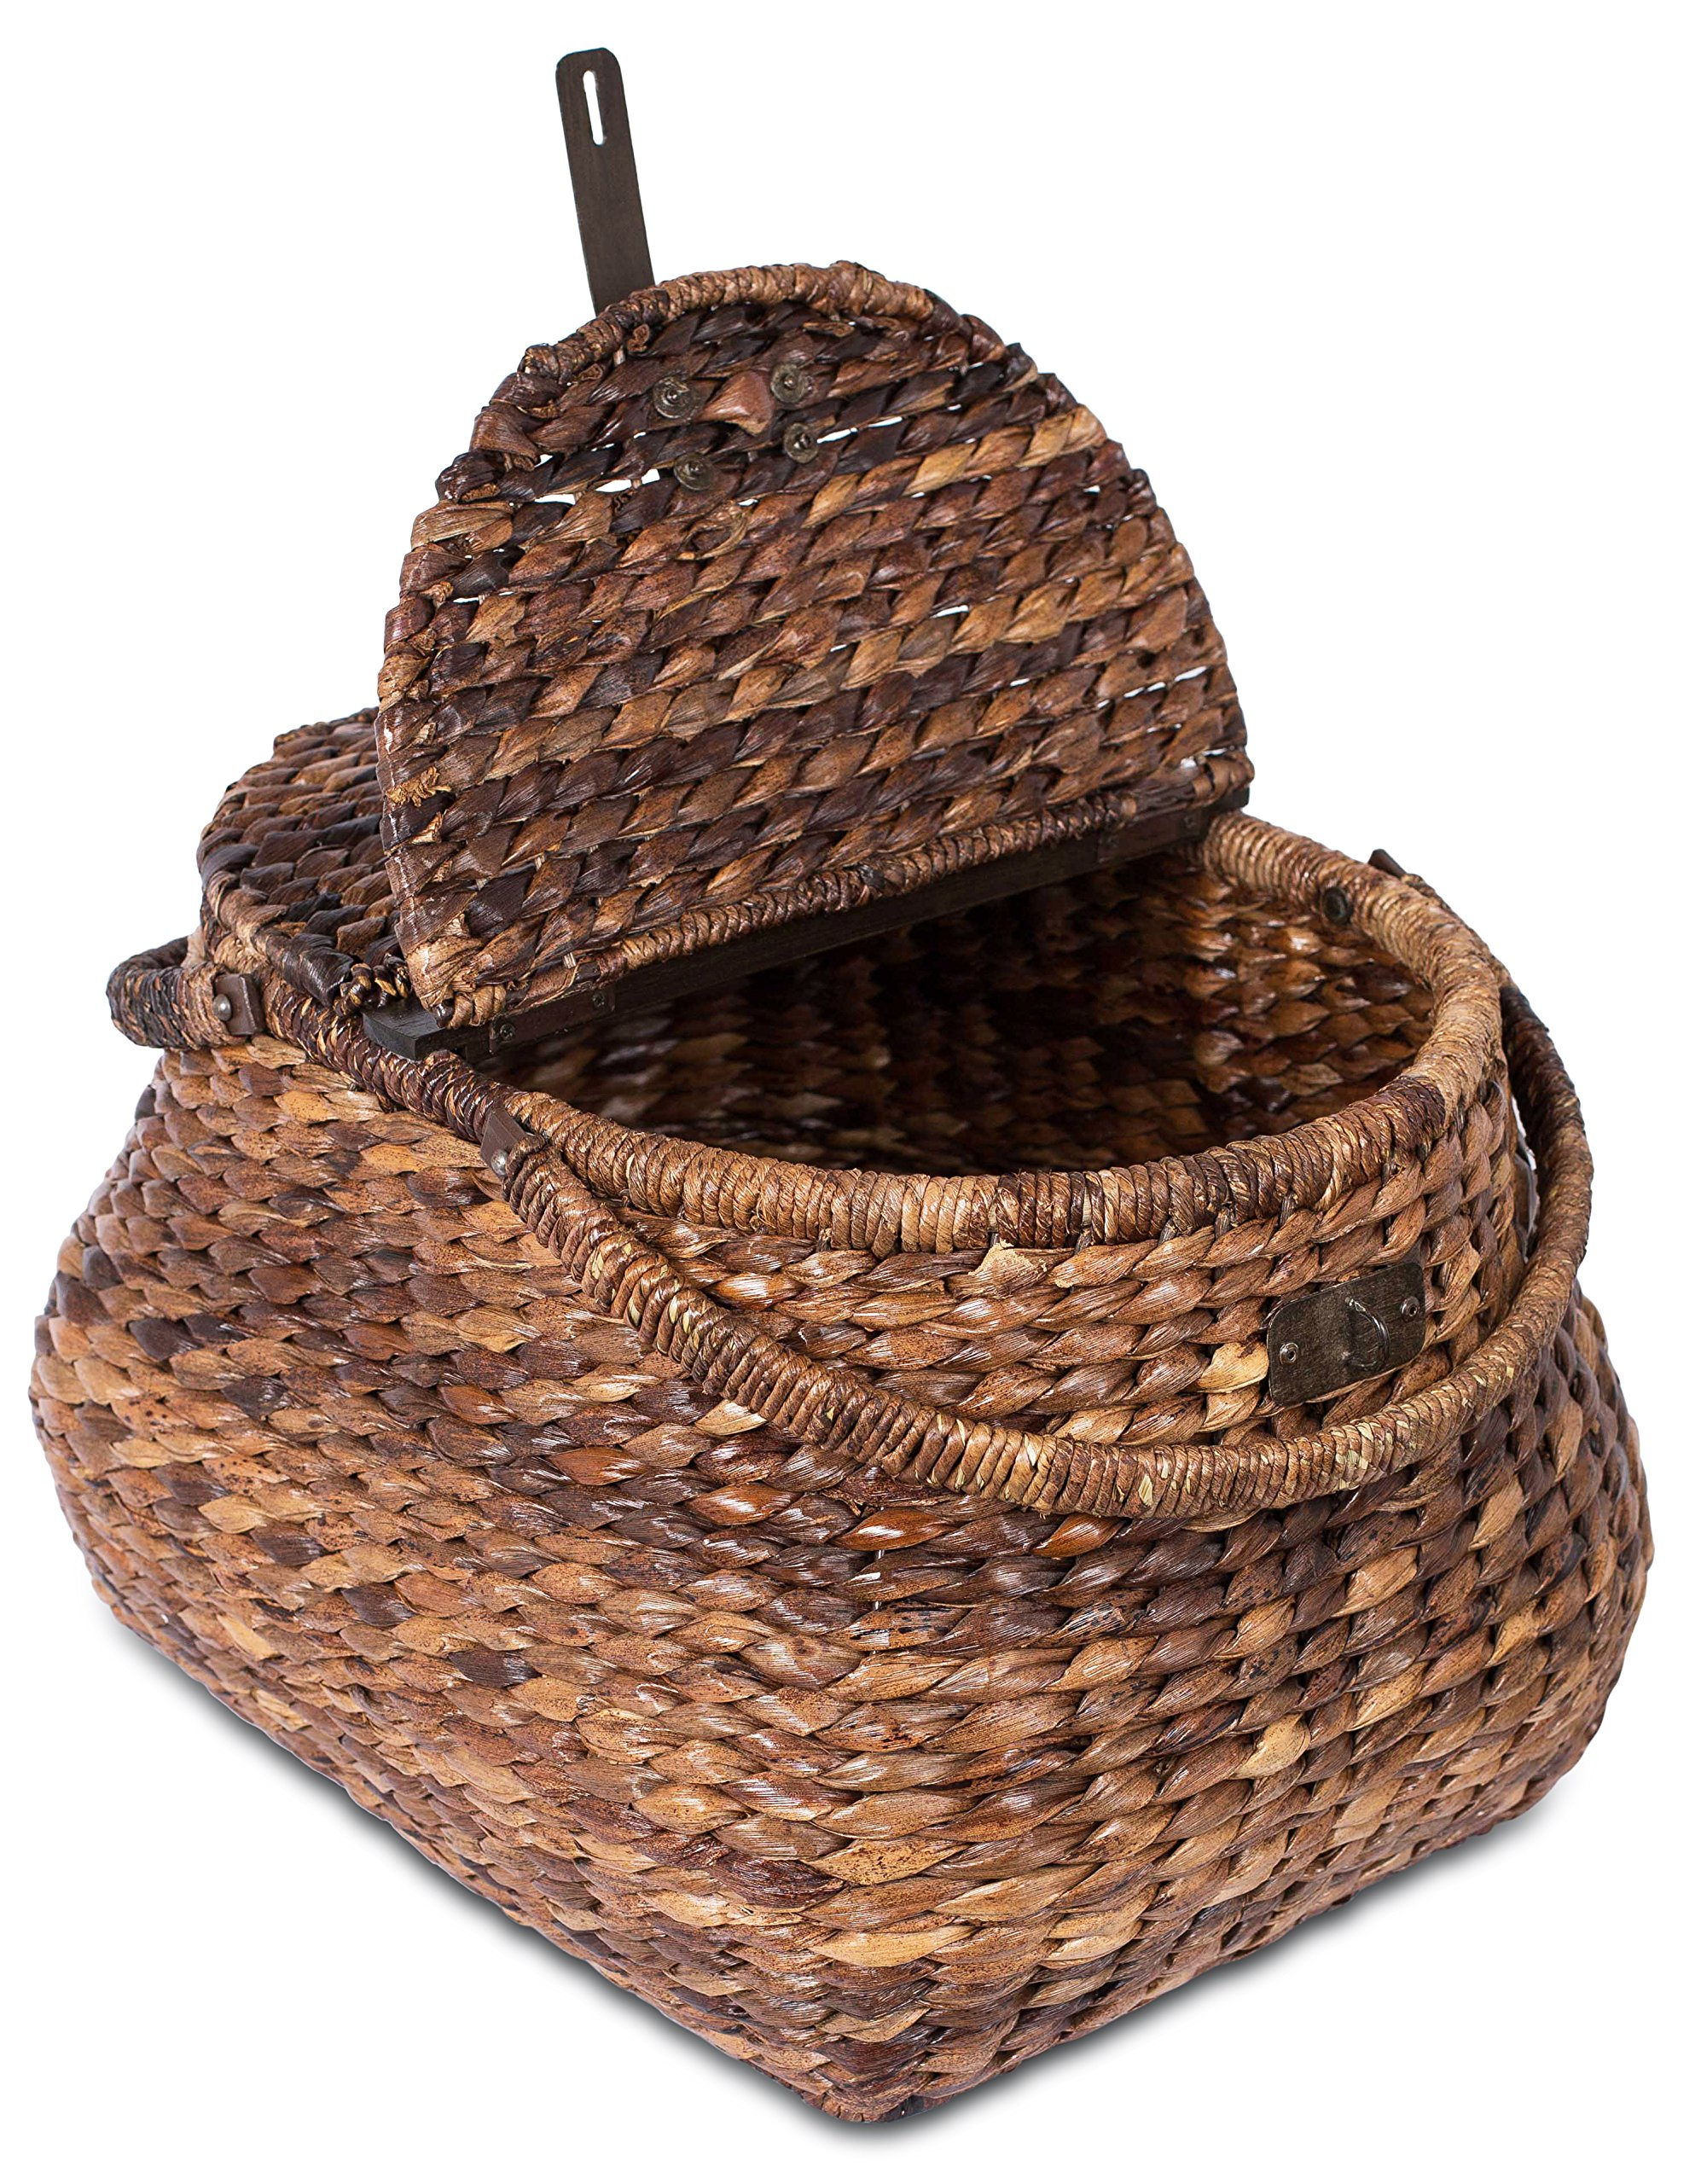 BirdRock Home Seagrass Picnic Basket - Hand Woven - Espresso - Decorative Metal Latches - Divided Lid - Home Décor - Folding Handles by BIRDROCK HOME